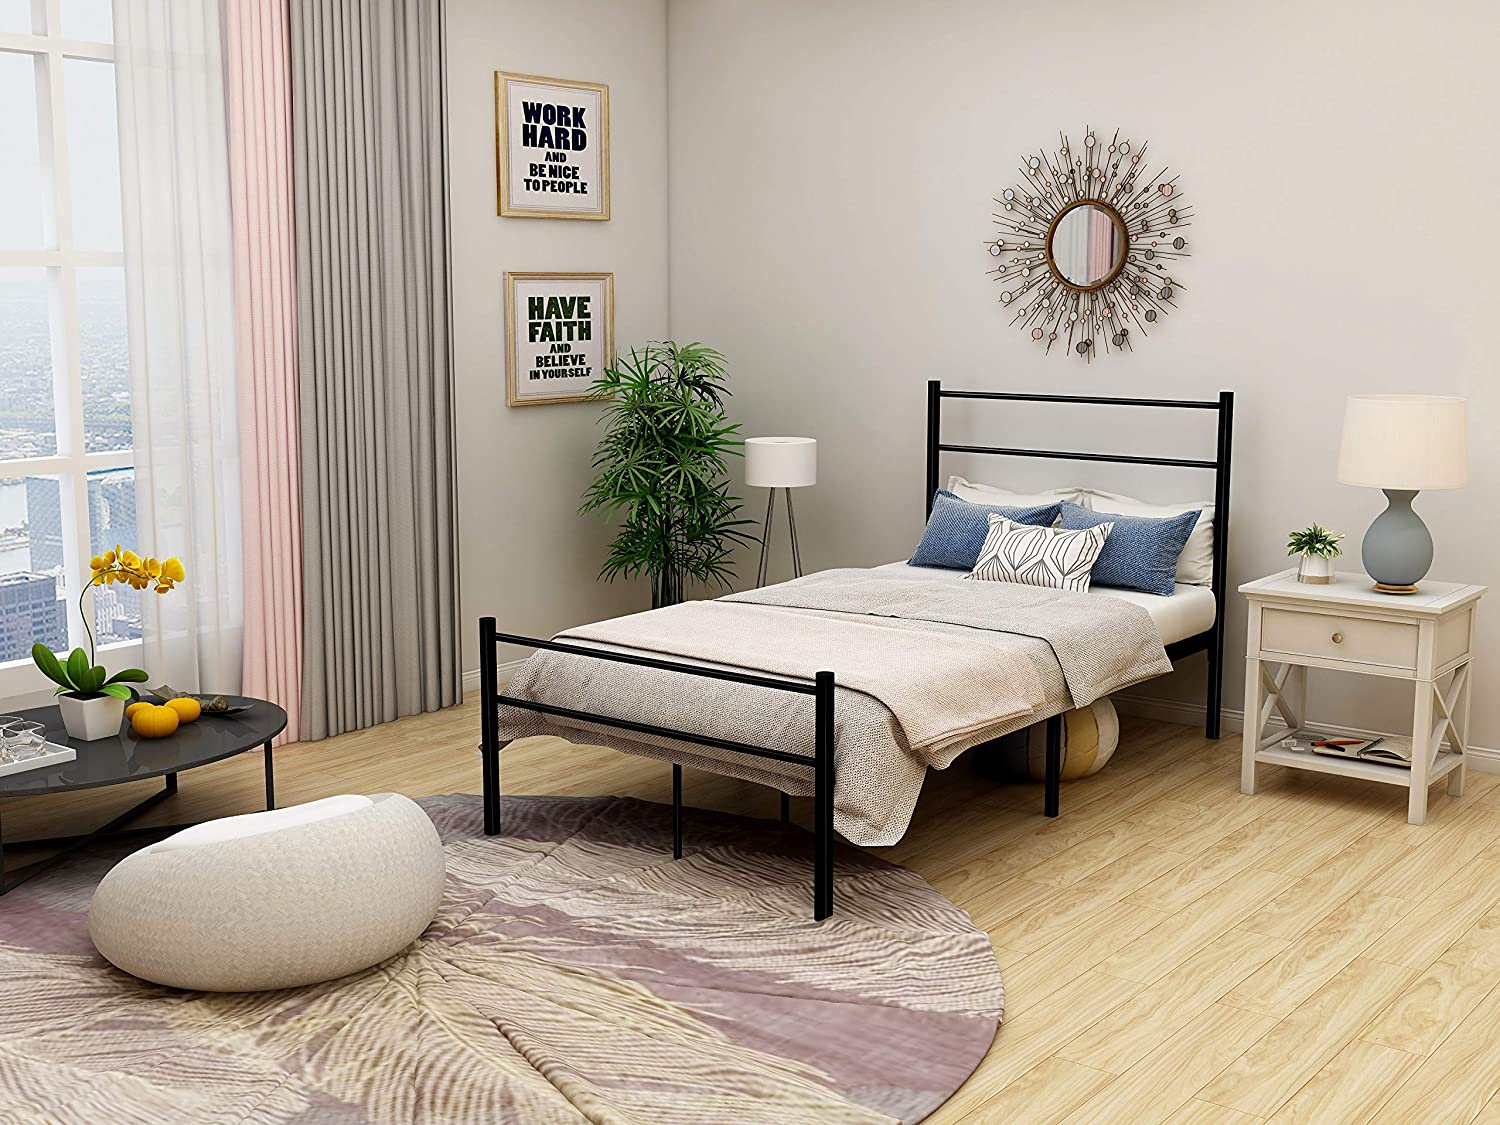 DUMEE Metal Bed Frame With Headboard and Footboard Steel Slat Support Single Size Black